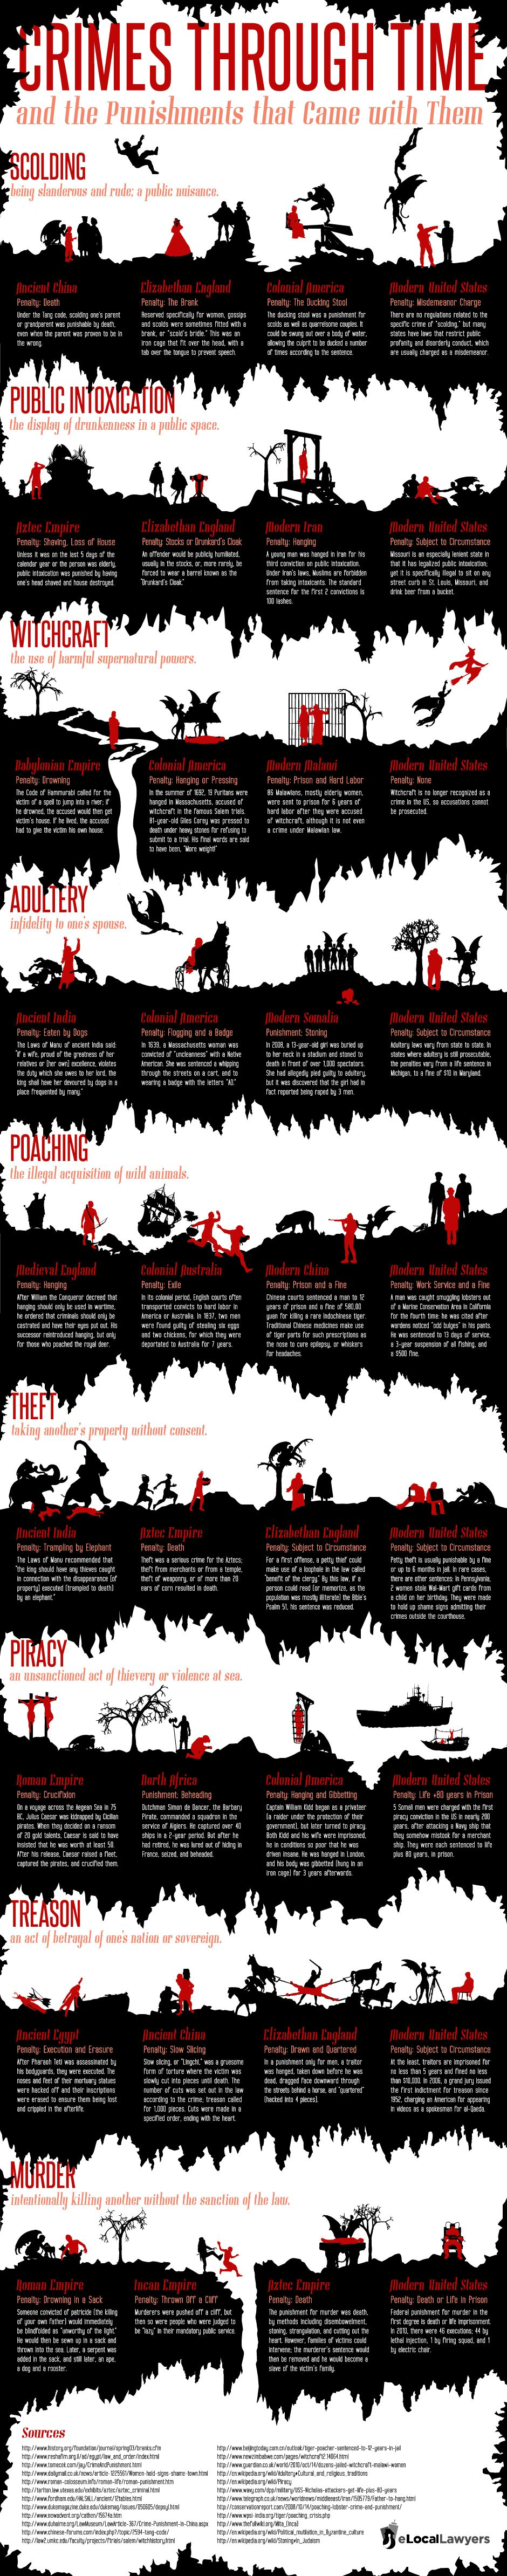 Crimes through time. Very cool infographic for plot!